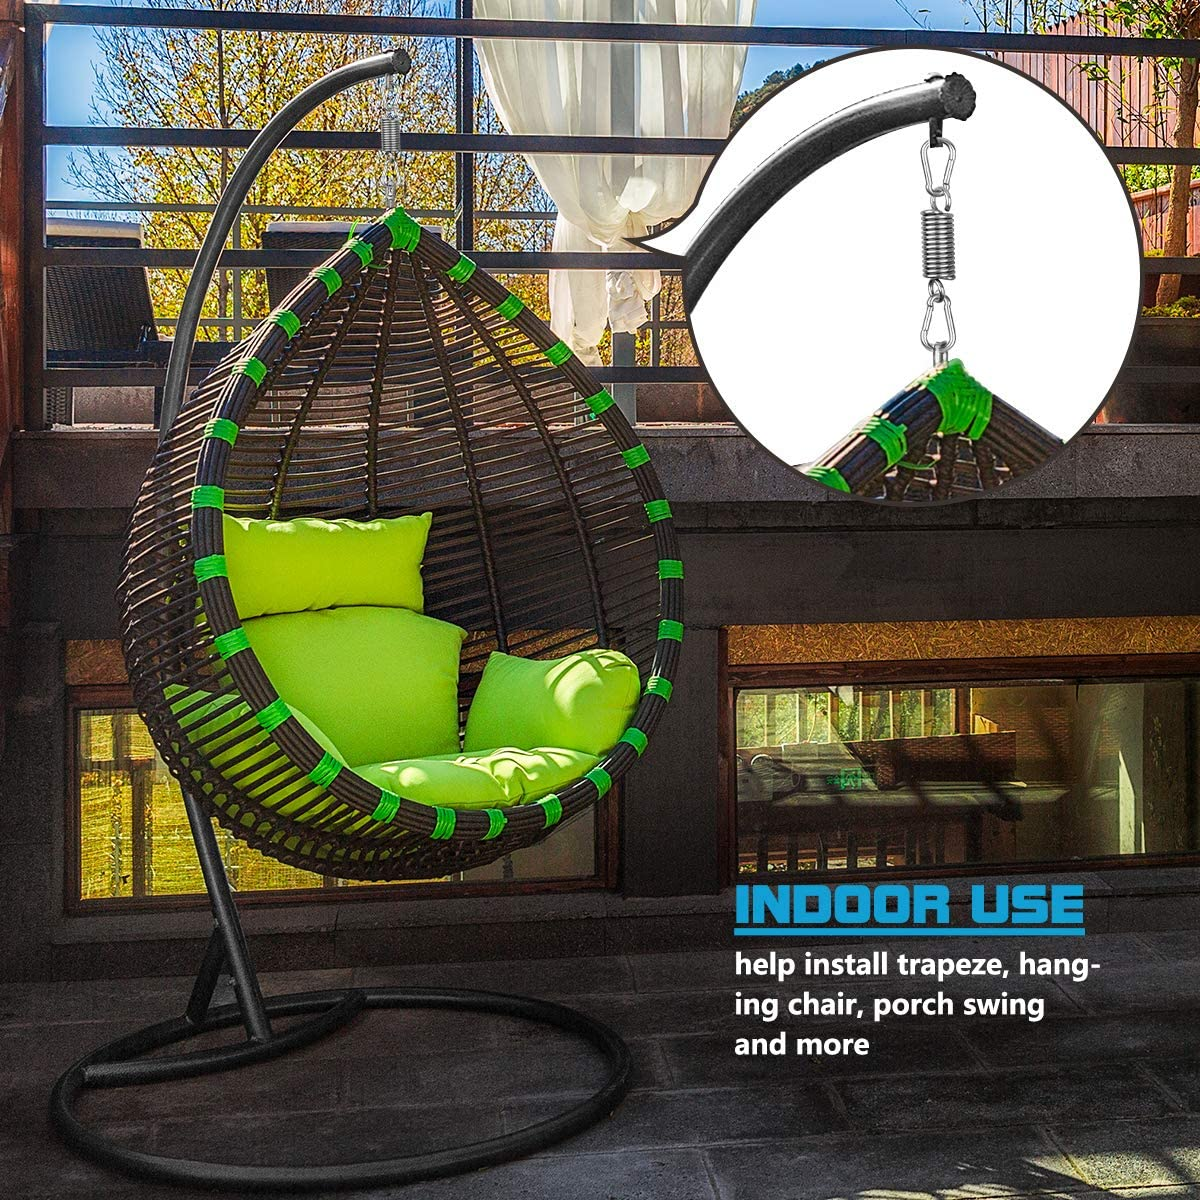 Stainless Steel Mount Kit for Hanging Chair,Punching Bag,Swing,Hammock,Trapeze GROOFOO Heavy Duty Hanger Set